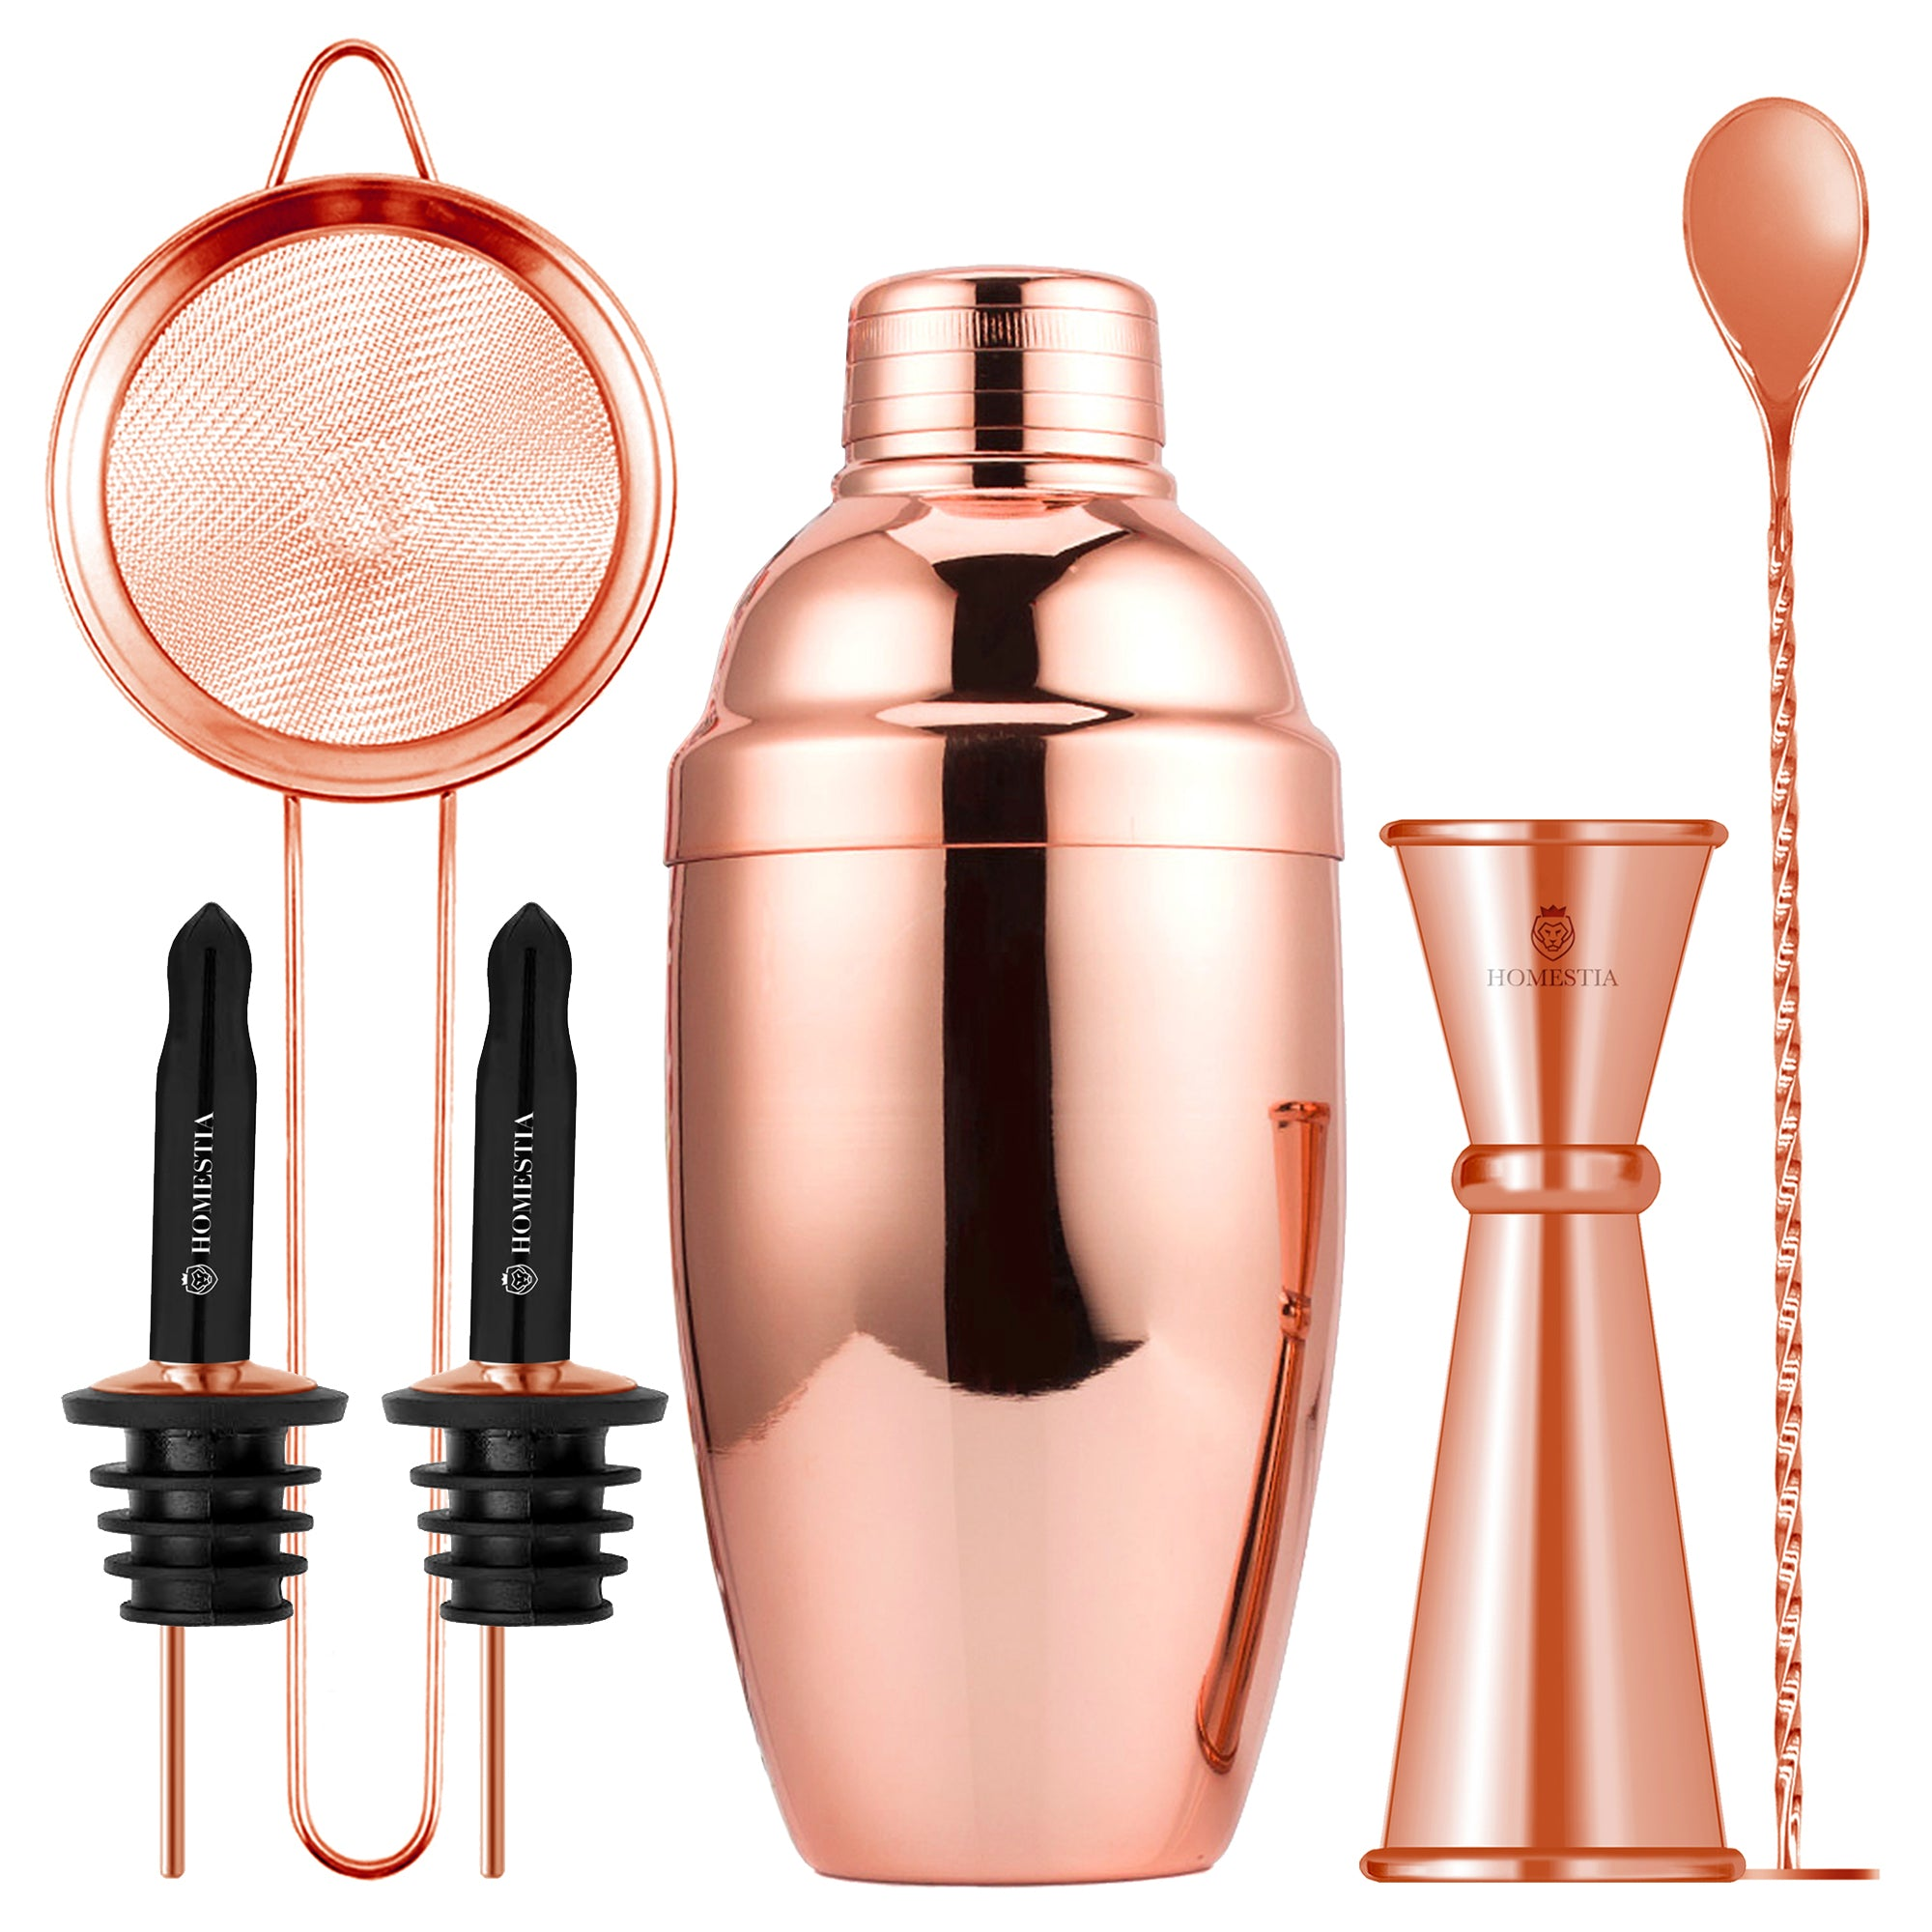 Homestia 20oz Cocktail Shaker Set with Double Cocktail Jigger and Mixing Spoon Bartender Kit Gift, Rose